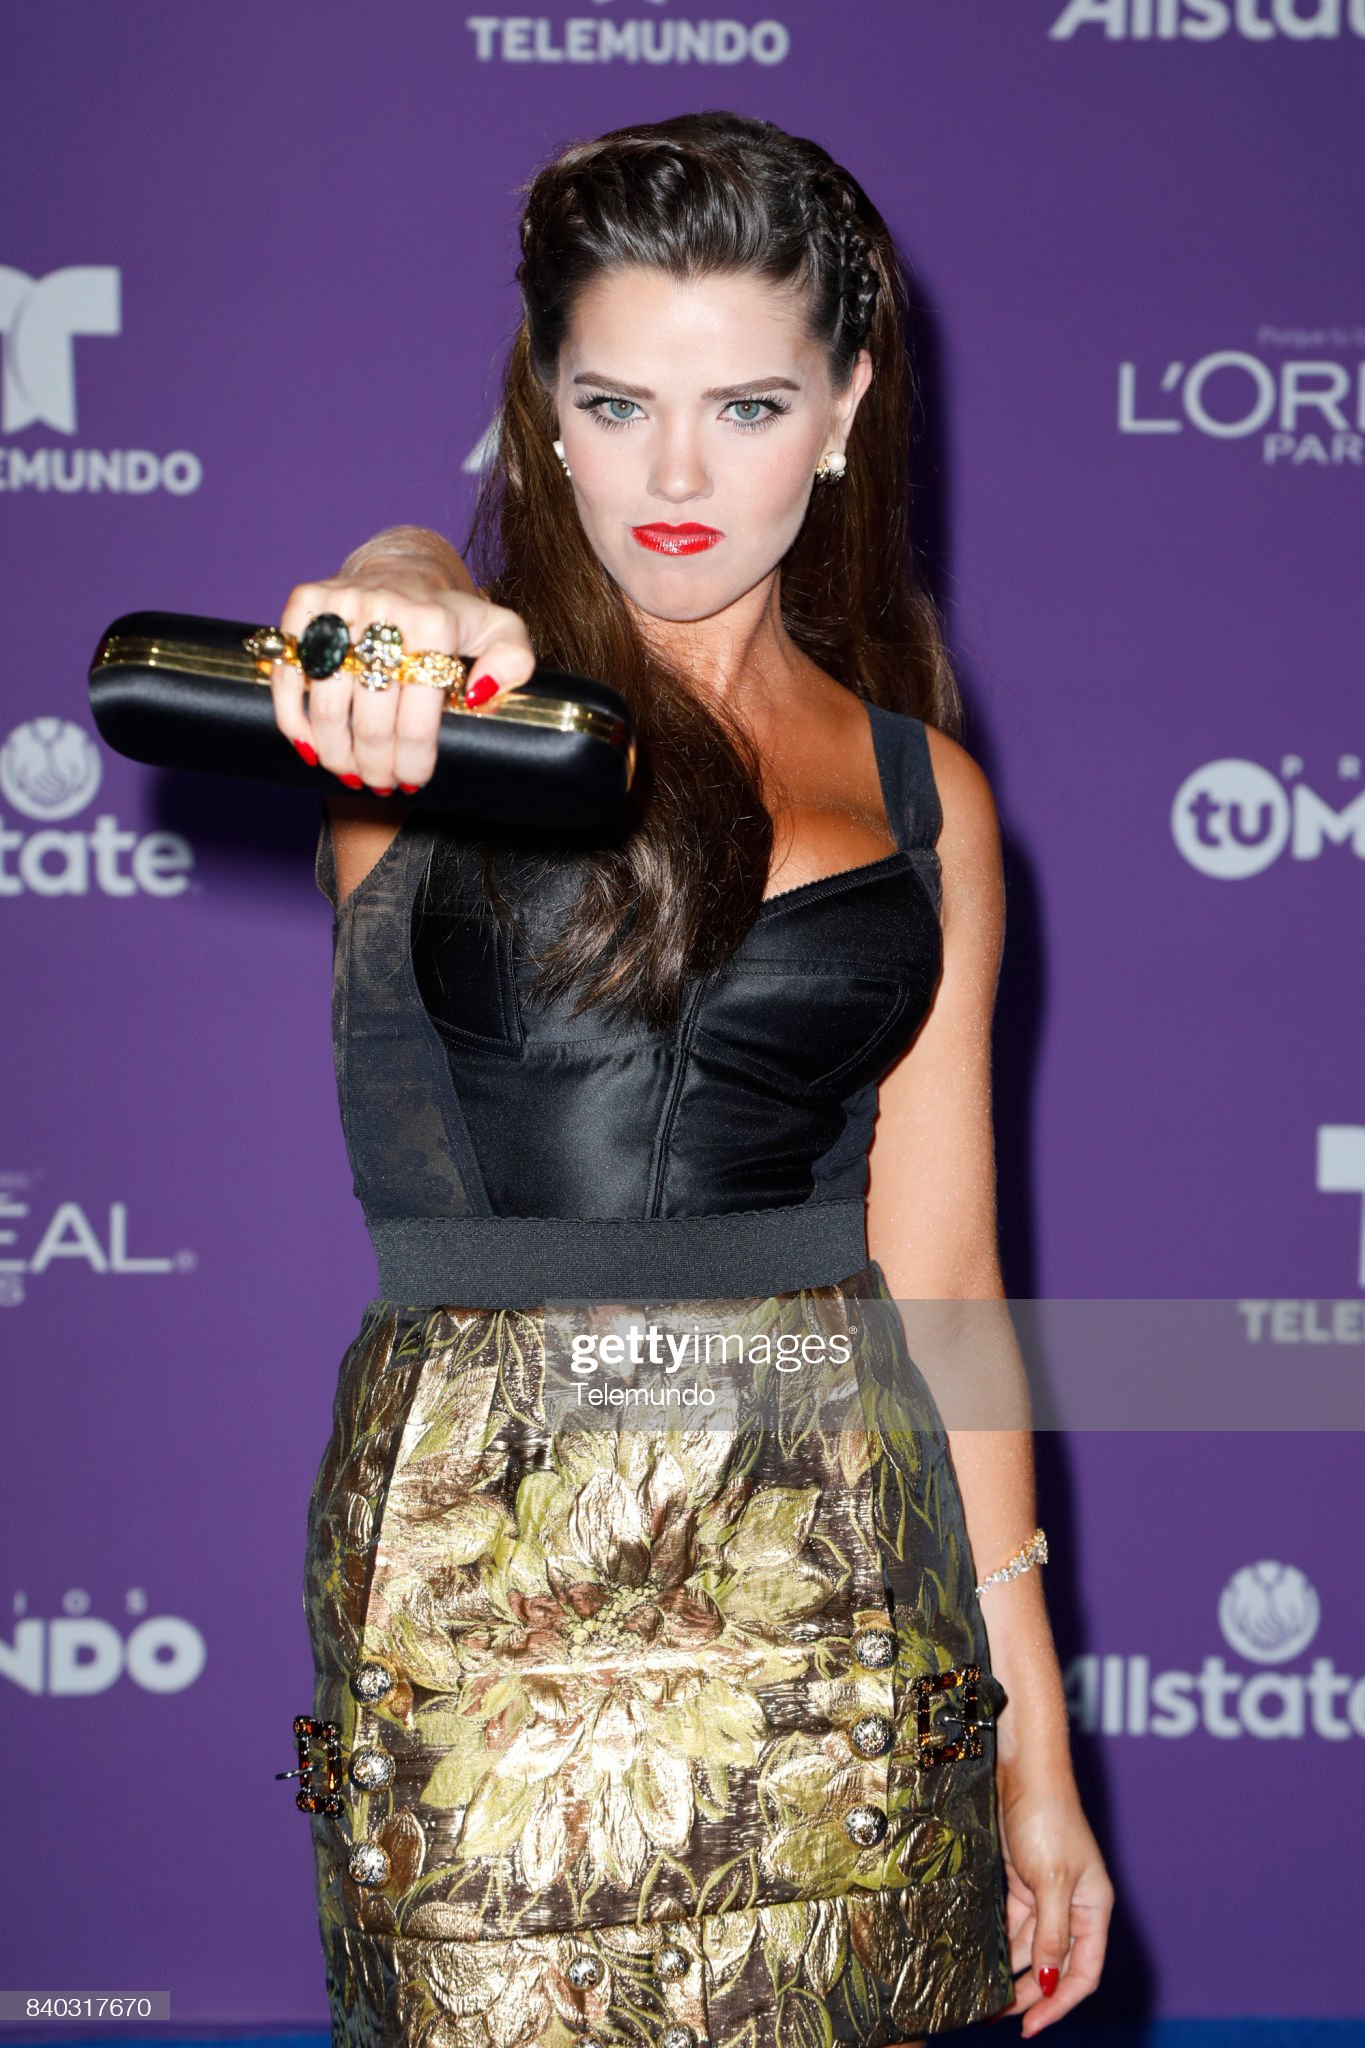 https://media.gettyimages.com/photos/blue-carpet-pictured-thali-garcia-arrives-to-the-2017-premios-tu-at-picture-id840317670?s=2048x2048